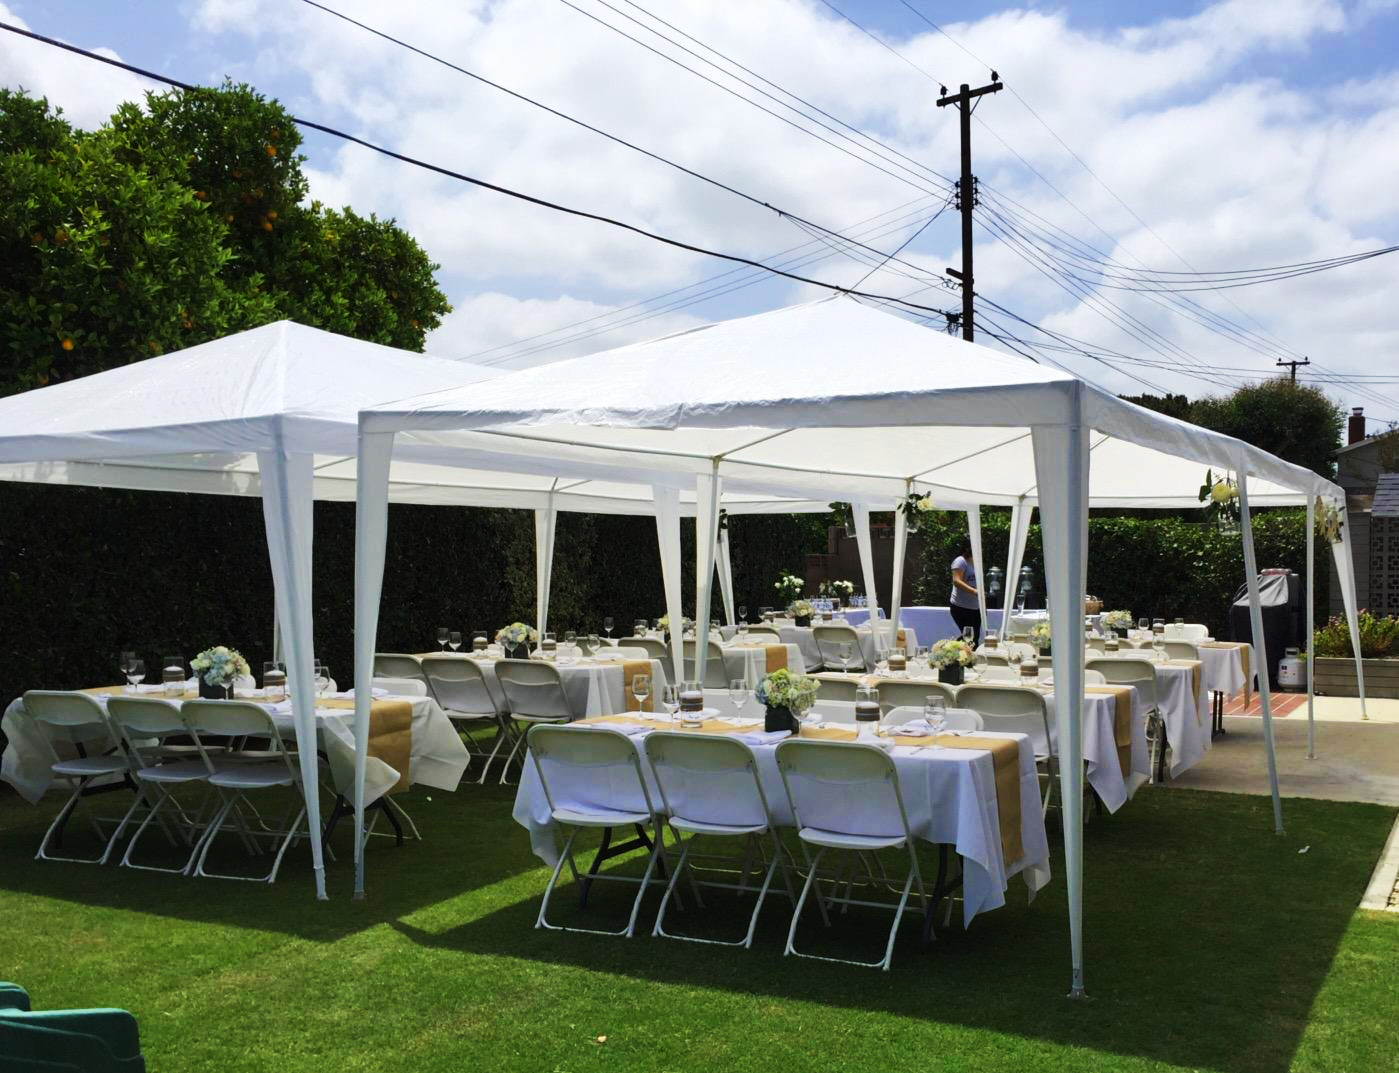 Peaktop® 10 X 30 Heavy Duty Outdoor Gazebo Wedding Party